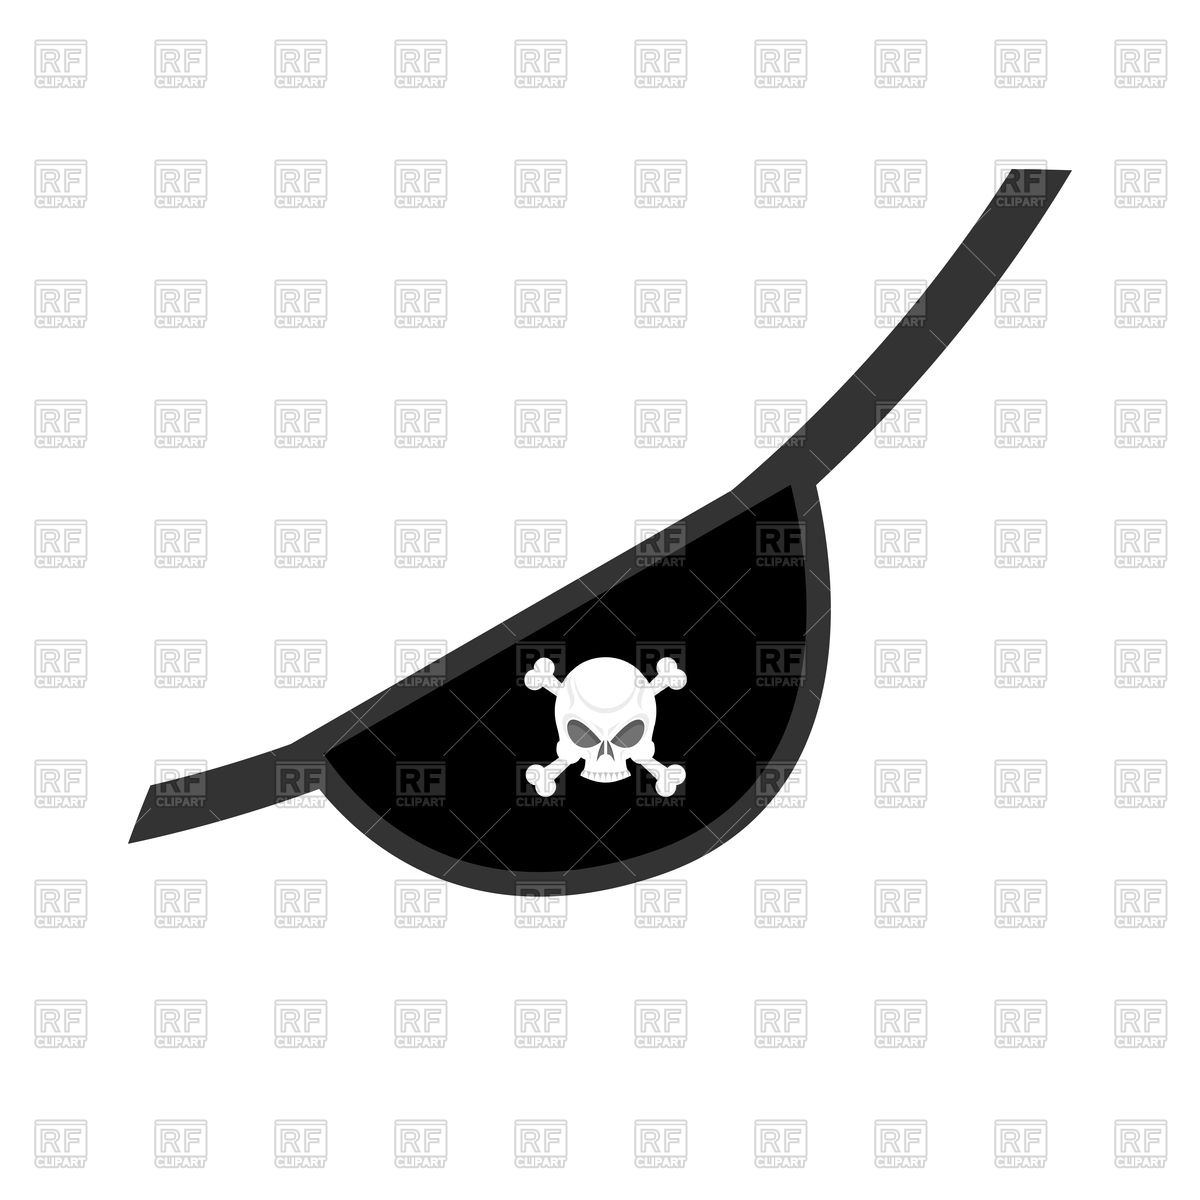 Pirate eye patch clipart 4 » Clipart Station.